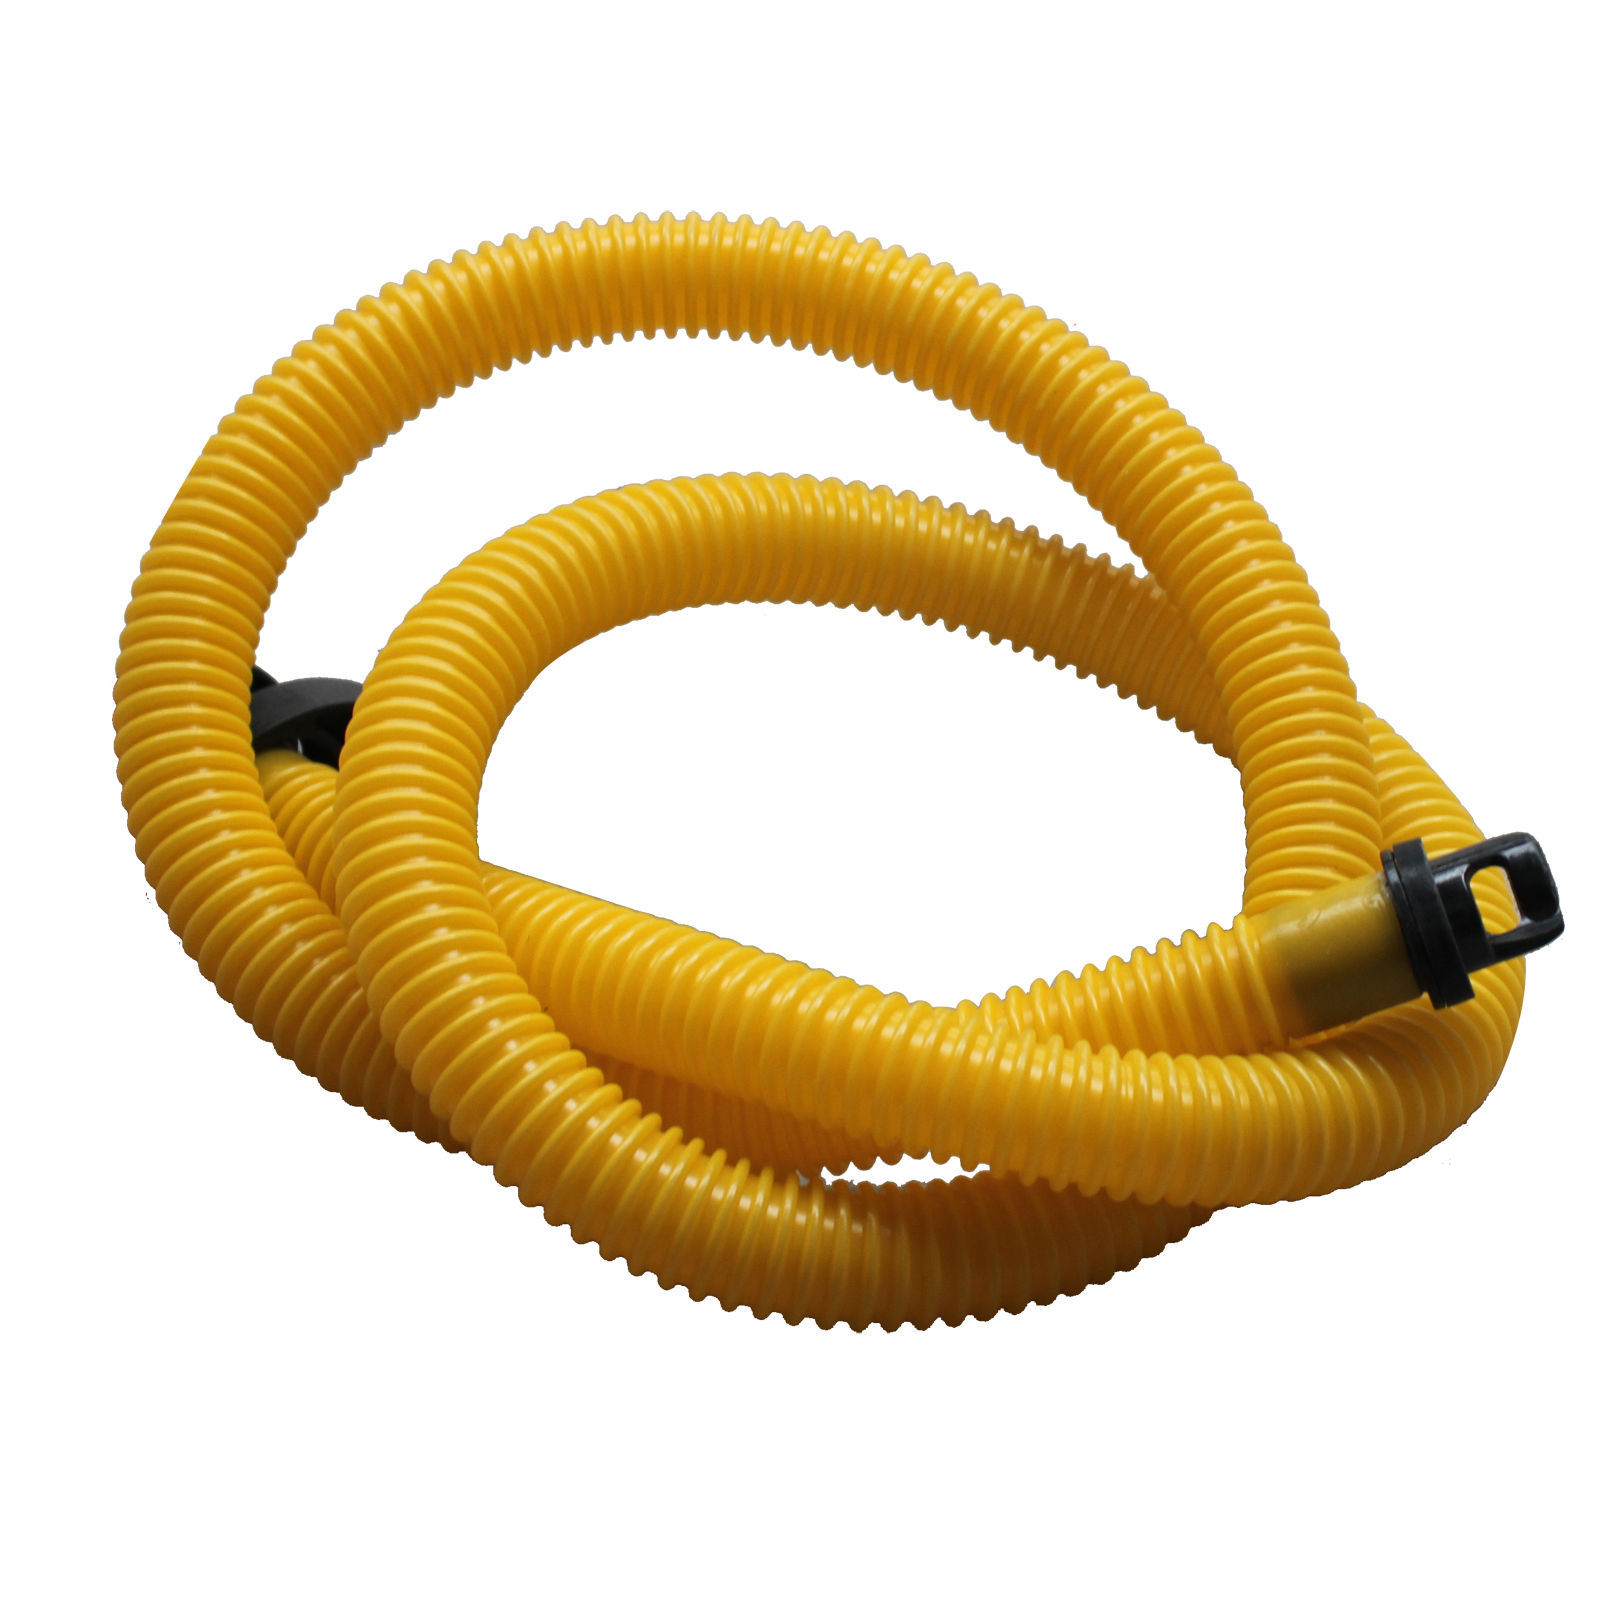 INFLATABLE BOAT FOOT PUMP HOSE WITH HALKEY ROBERTS VALVE CONNECTOR